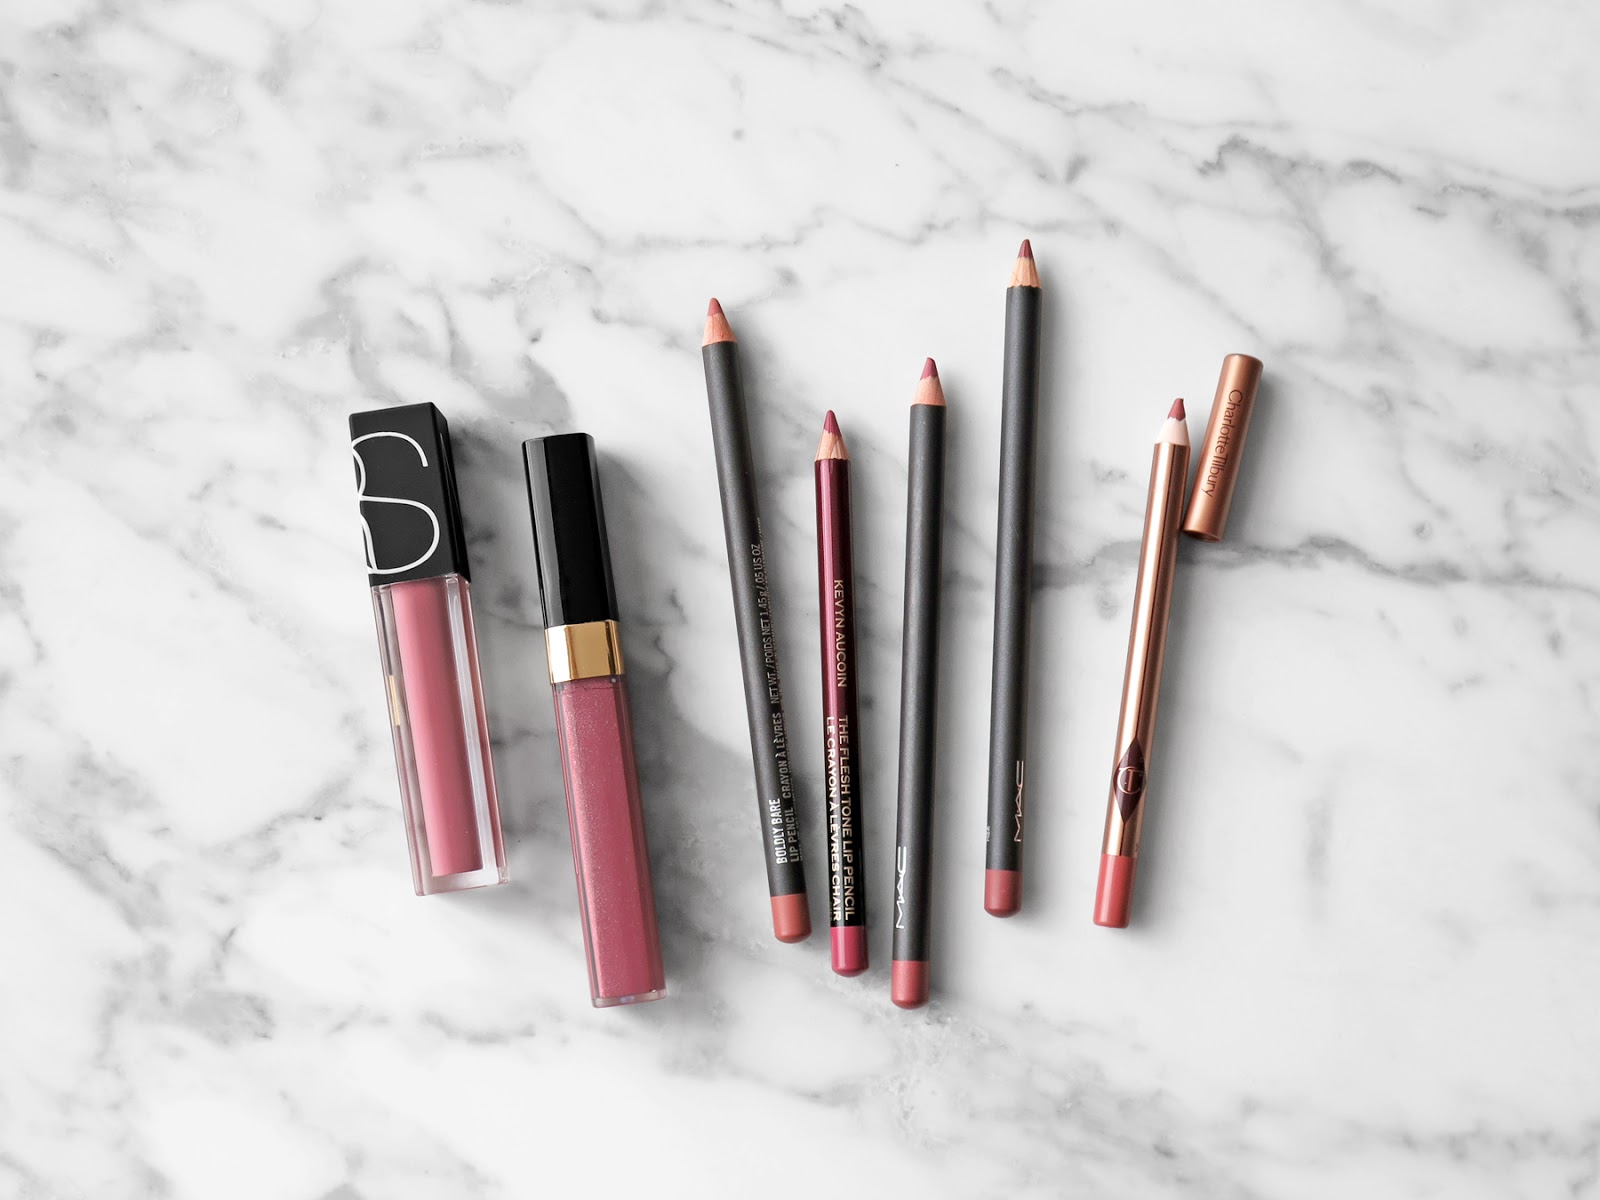 NARS Bound, Chanel Wild Rose, MAC Lip Pencils - The Beauty Look Book